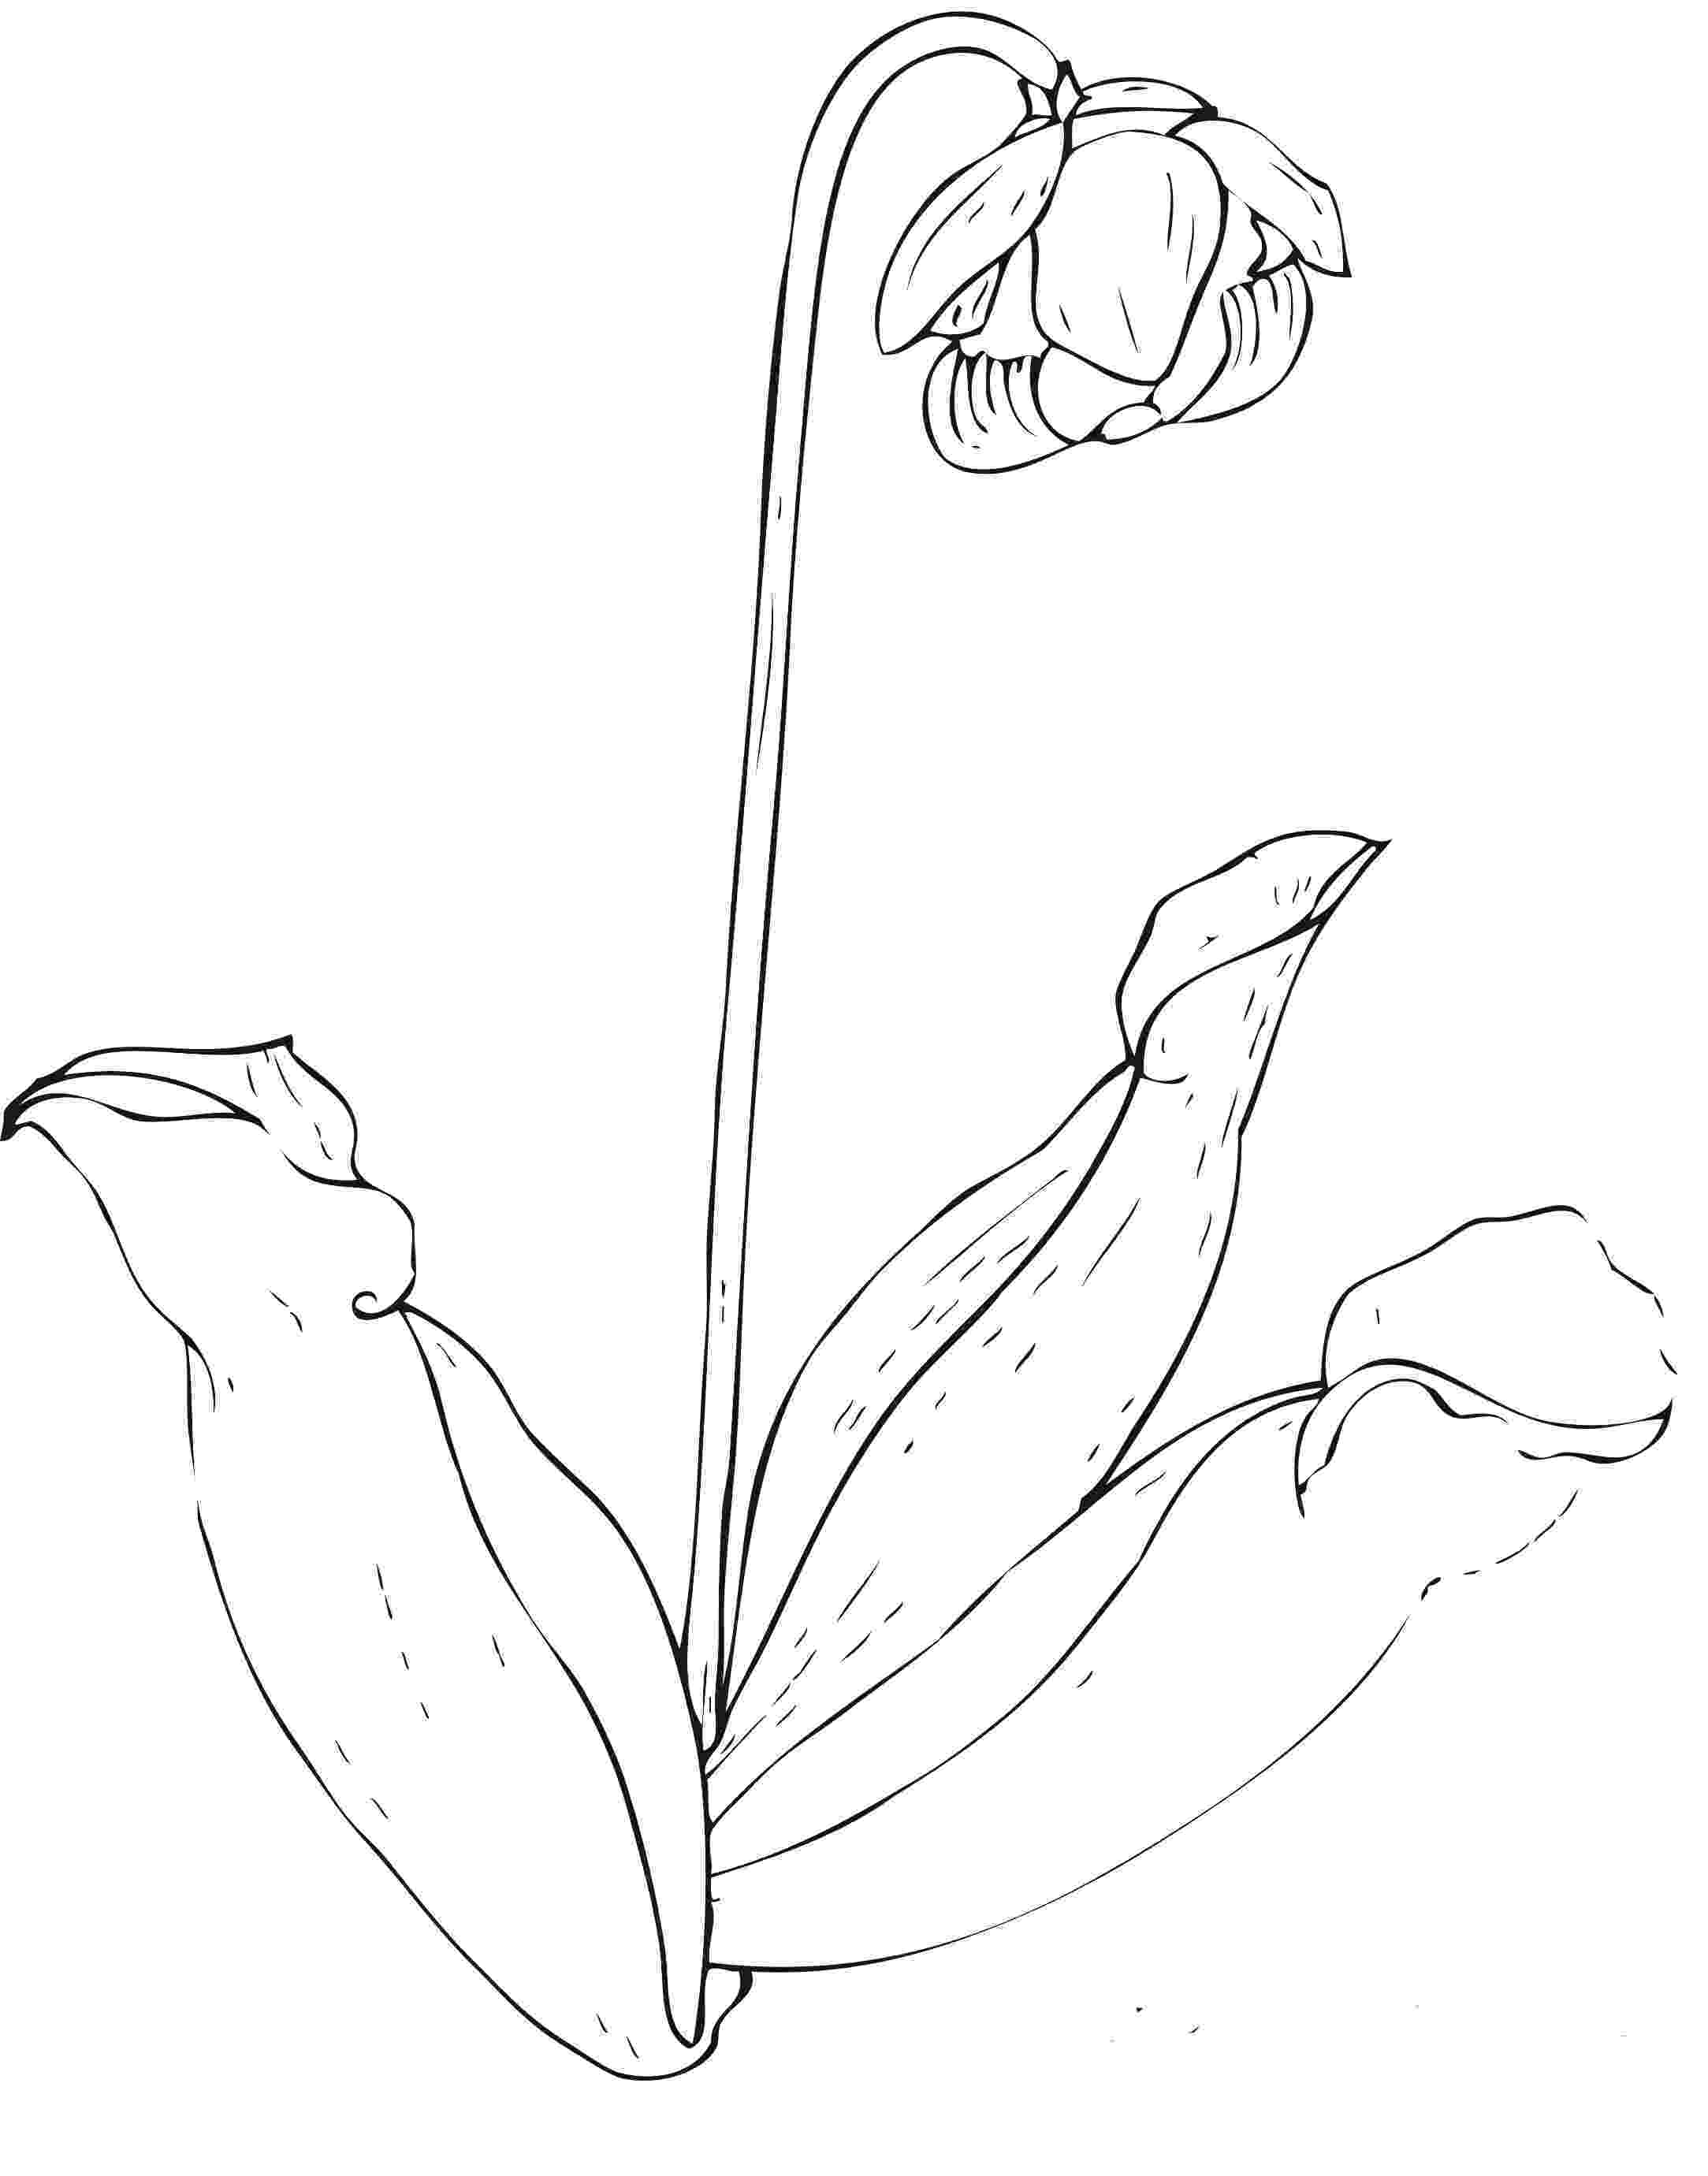 free flower pictures to print and color free printable flower coloring pages for kids best and flower to free print pictures color